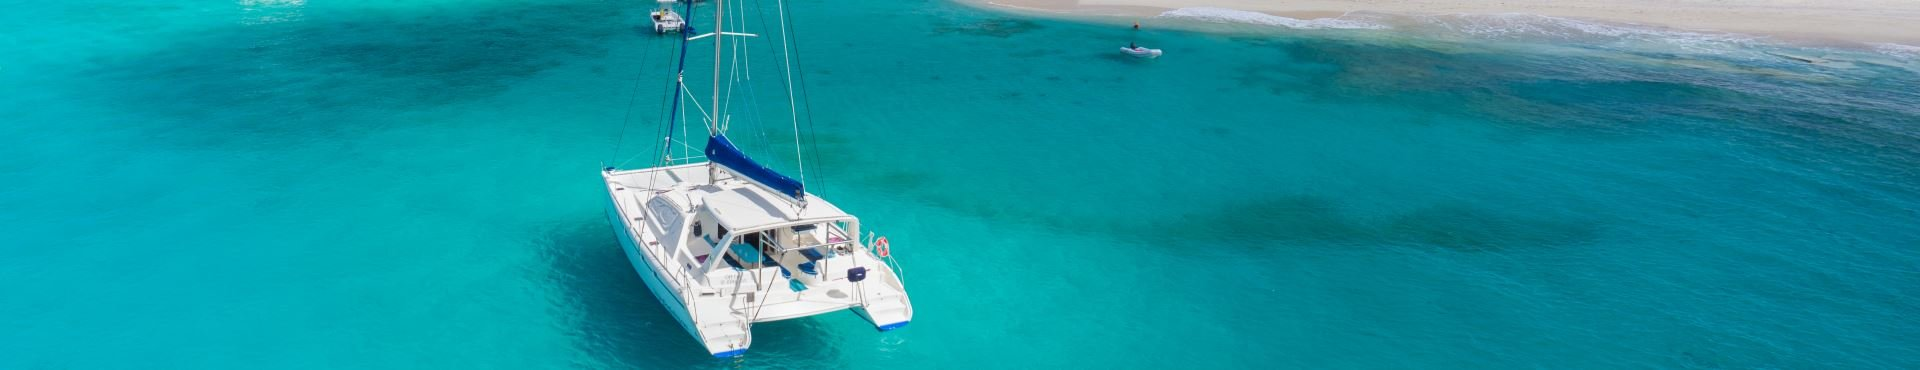 Catamaran sailing around island | Shine Lawyers